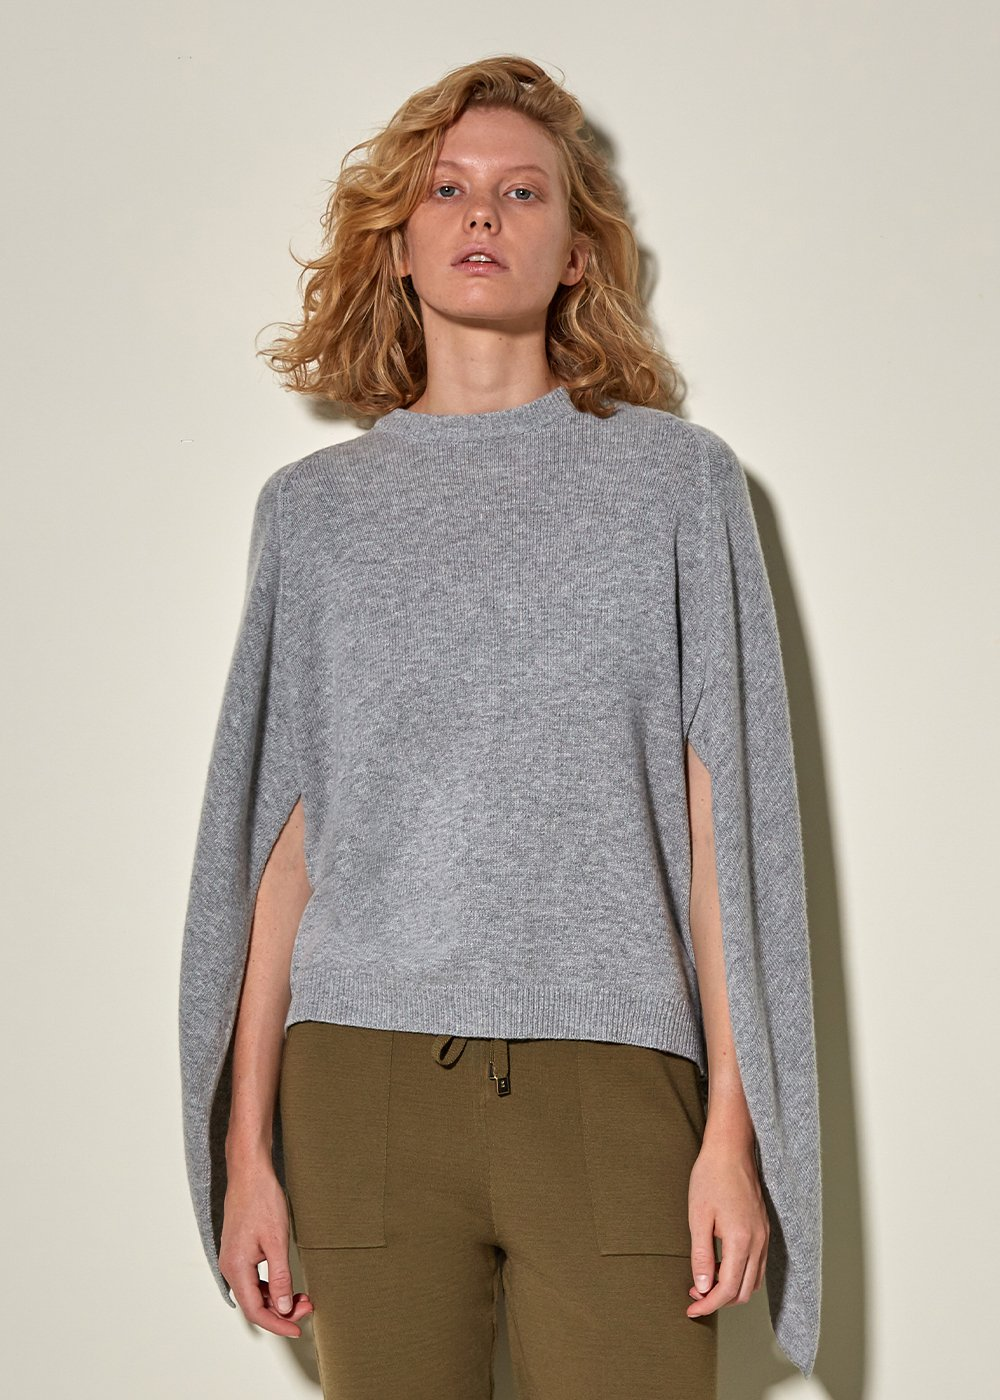 Wool Cashmere Blend Gray Knit Sweater